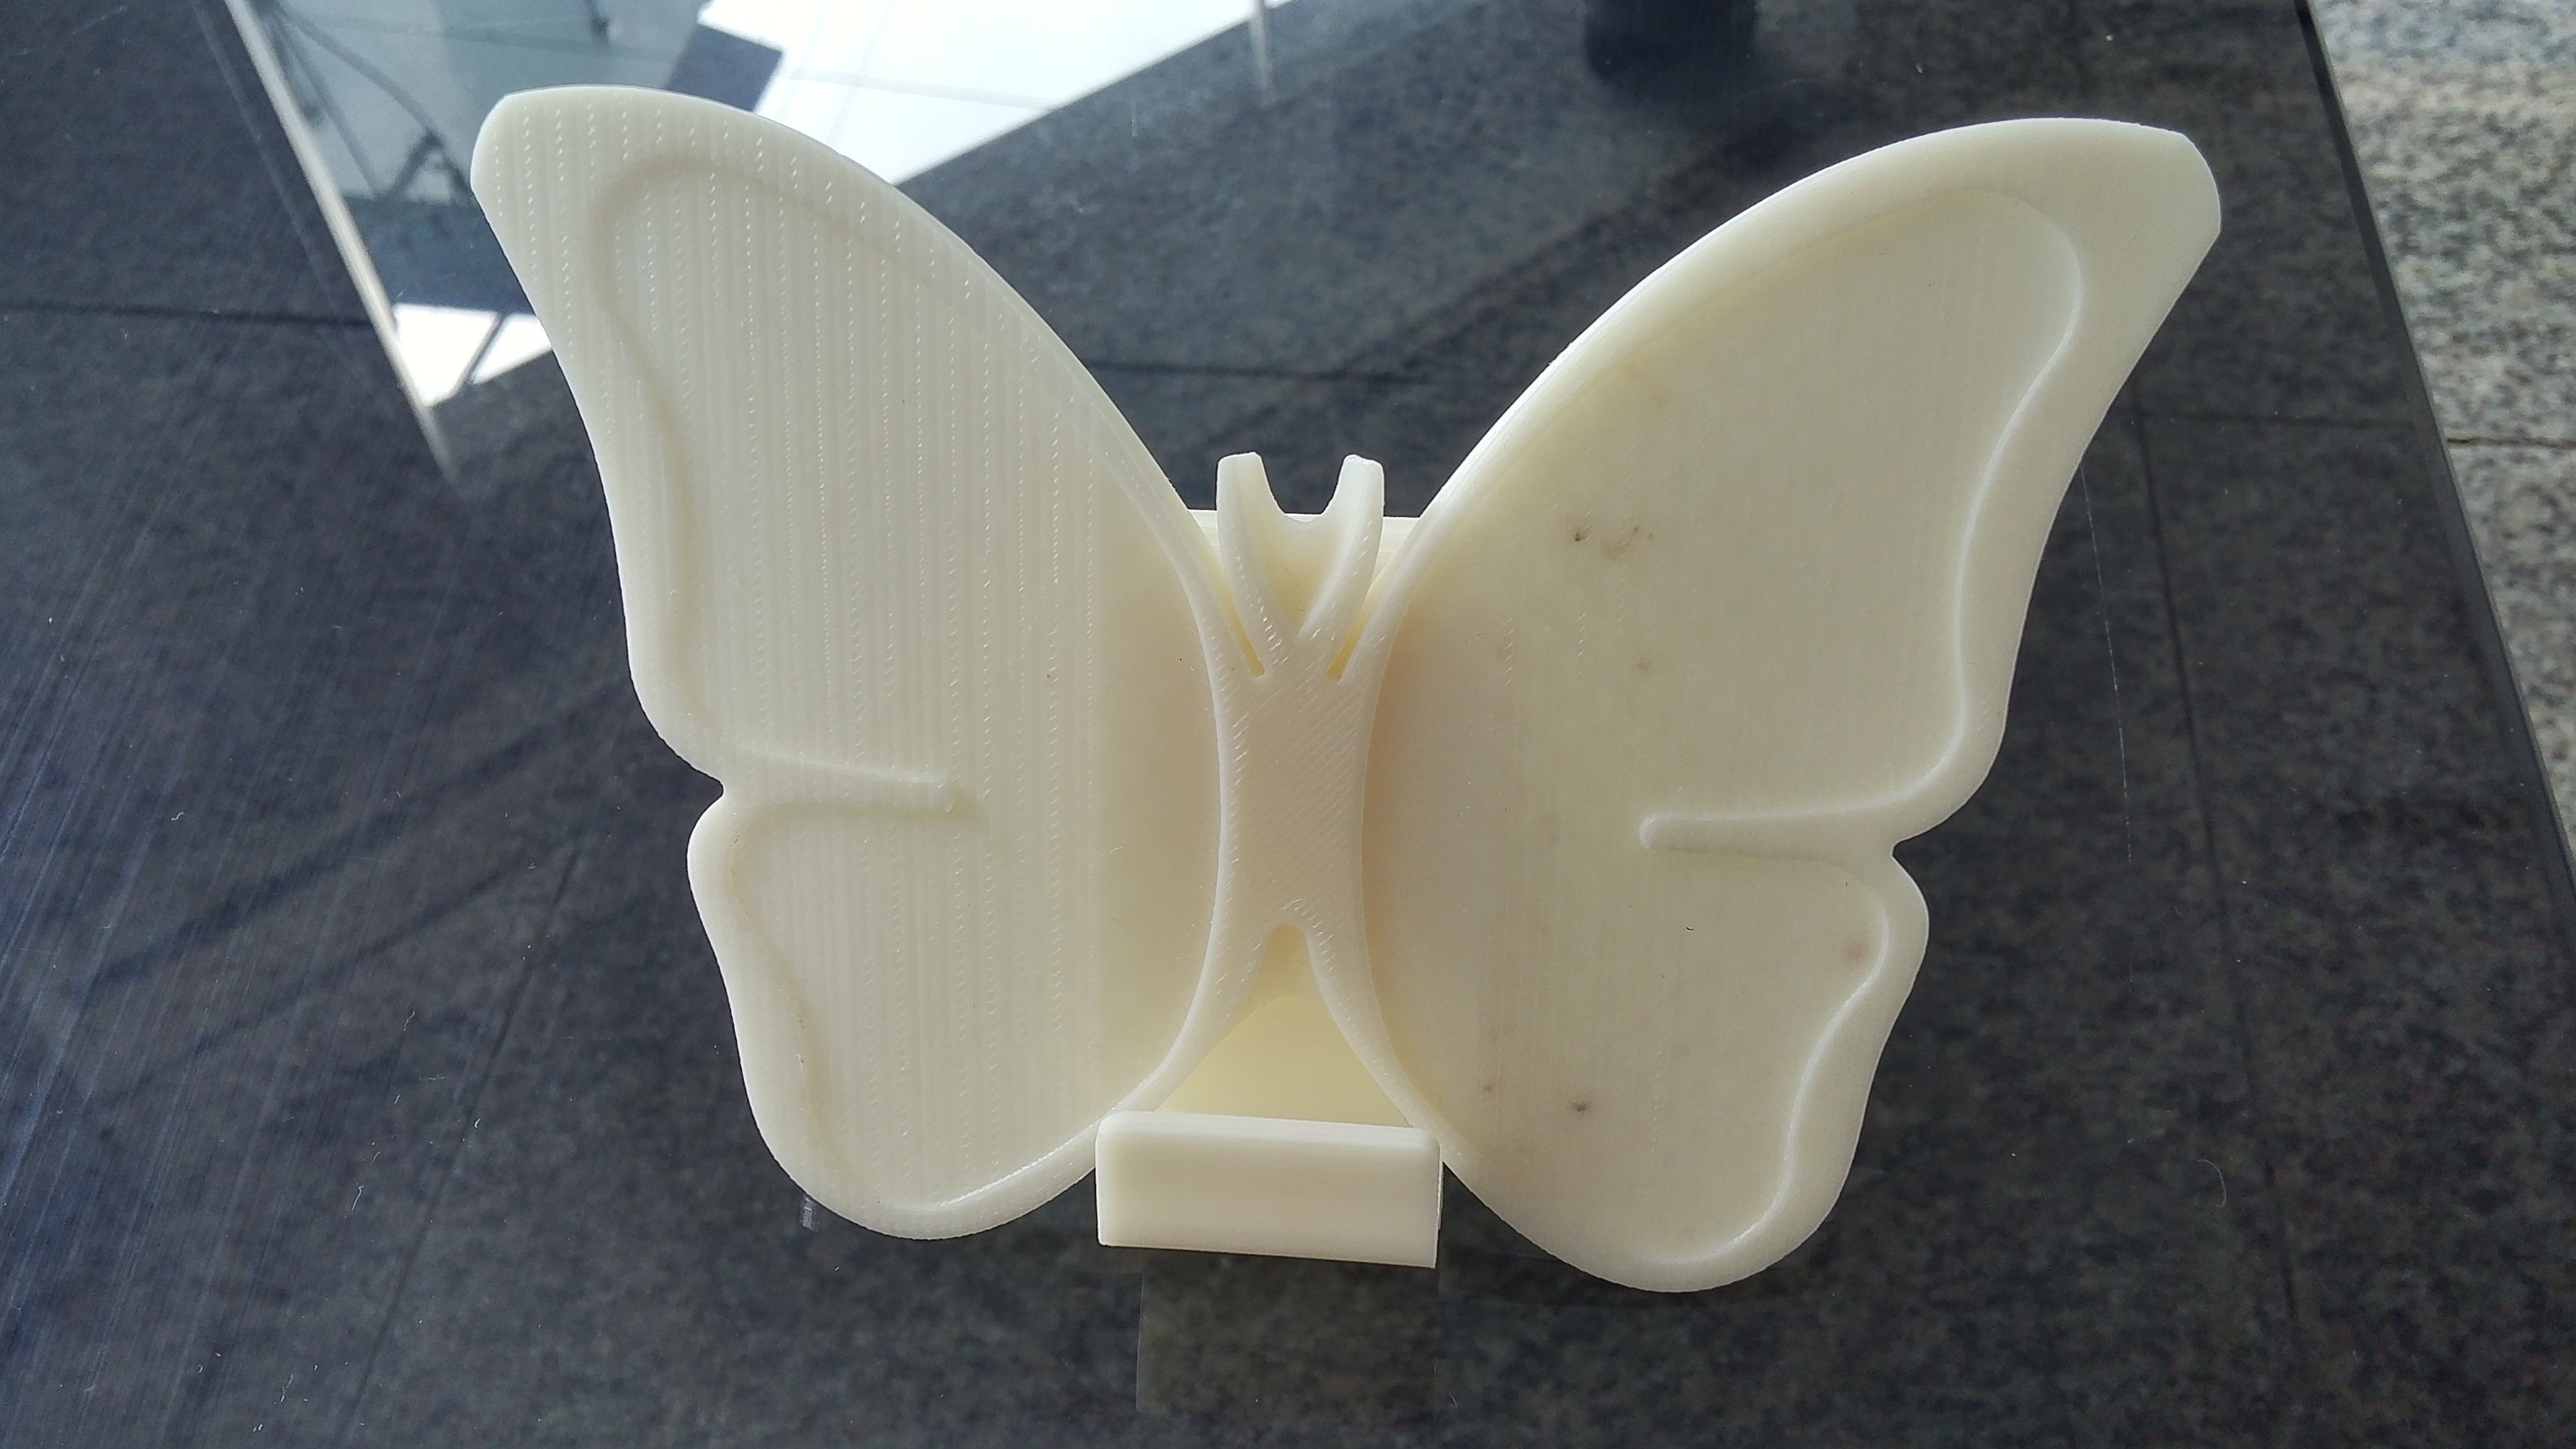 20161122_134720_HDR.jpg Download free STL file butterfly smart phone stand / butterfly name card • 3D printer template, 3D_parts